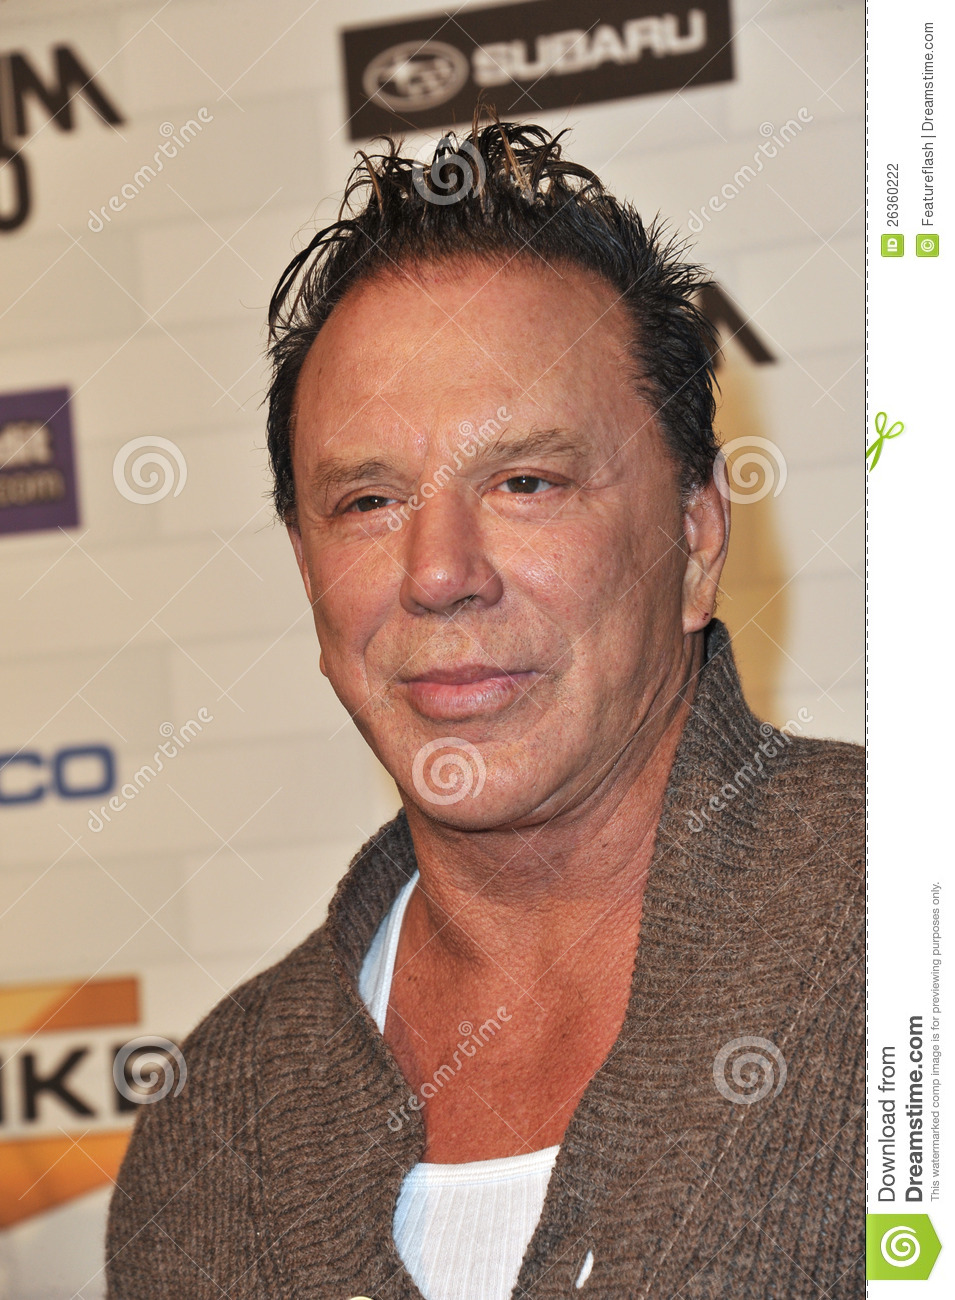 mickey rourke net worthmickey rourke 2016, mickey rourke young, mickey rourke 2017, mickey rourke boxing, mickey rourke boxrec, mickey rourke movies, mickey rourke wrestler, mickey rourke harley davidson, mickey rourke films, mickey rourke box, mickey rourke plastic, mickey rourke net worth, mickey rourke sin city, mickey rourke barfly, mickey rourke filmleri, mickey rourke tumblr, mickey rourke wife, mickey rourke instagram official, mickey rourke motorcycle, mickey rourke now